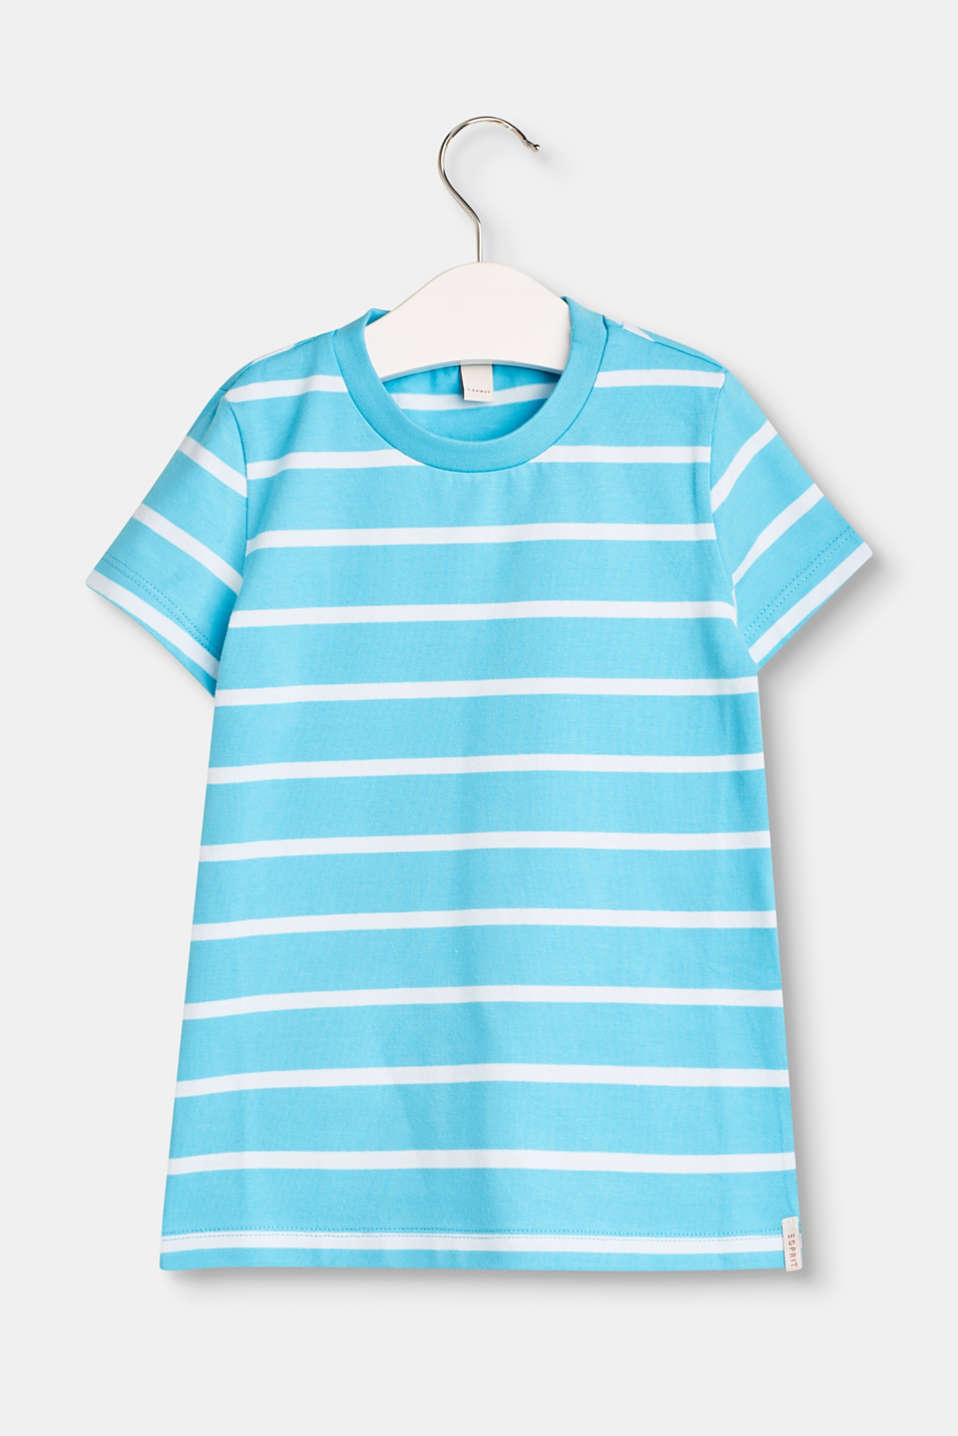 Esprit - Basic striped T-shirt with stretch for comfort